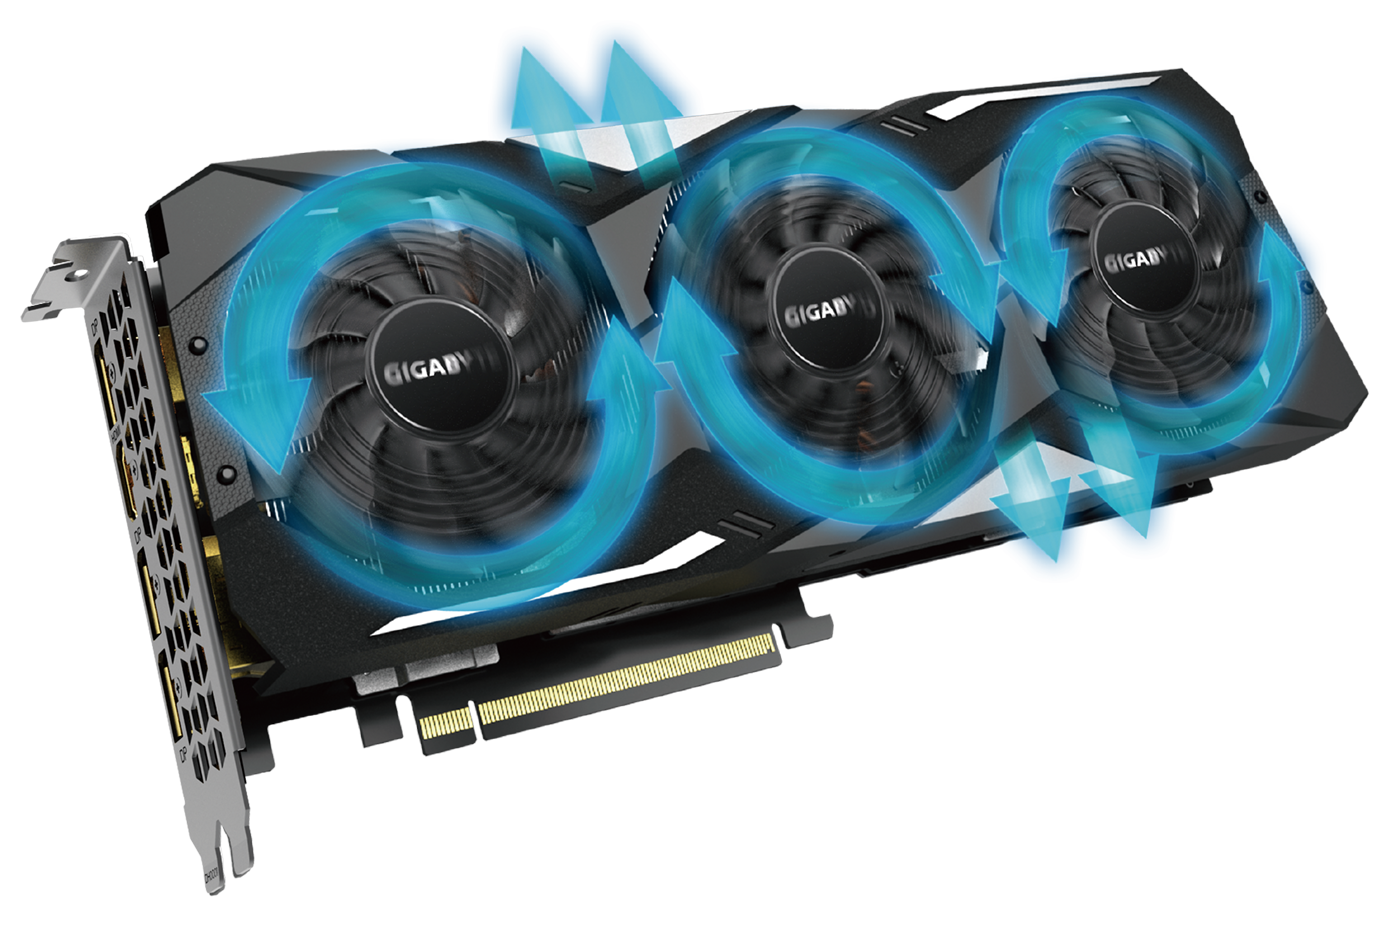 GeForce® RTX 2070 SUPER™ GAMING OC 3X 8G with the alluminum radiator